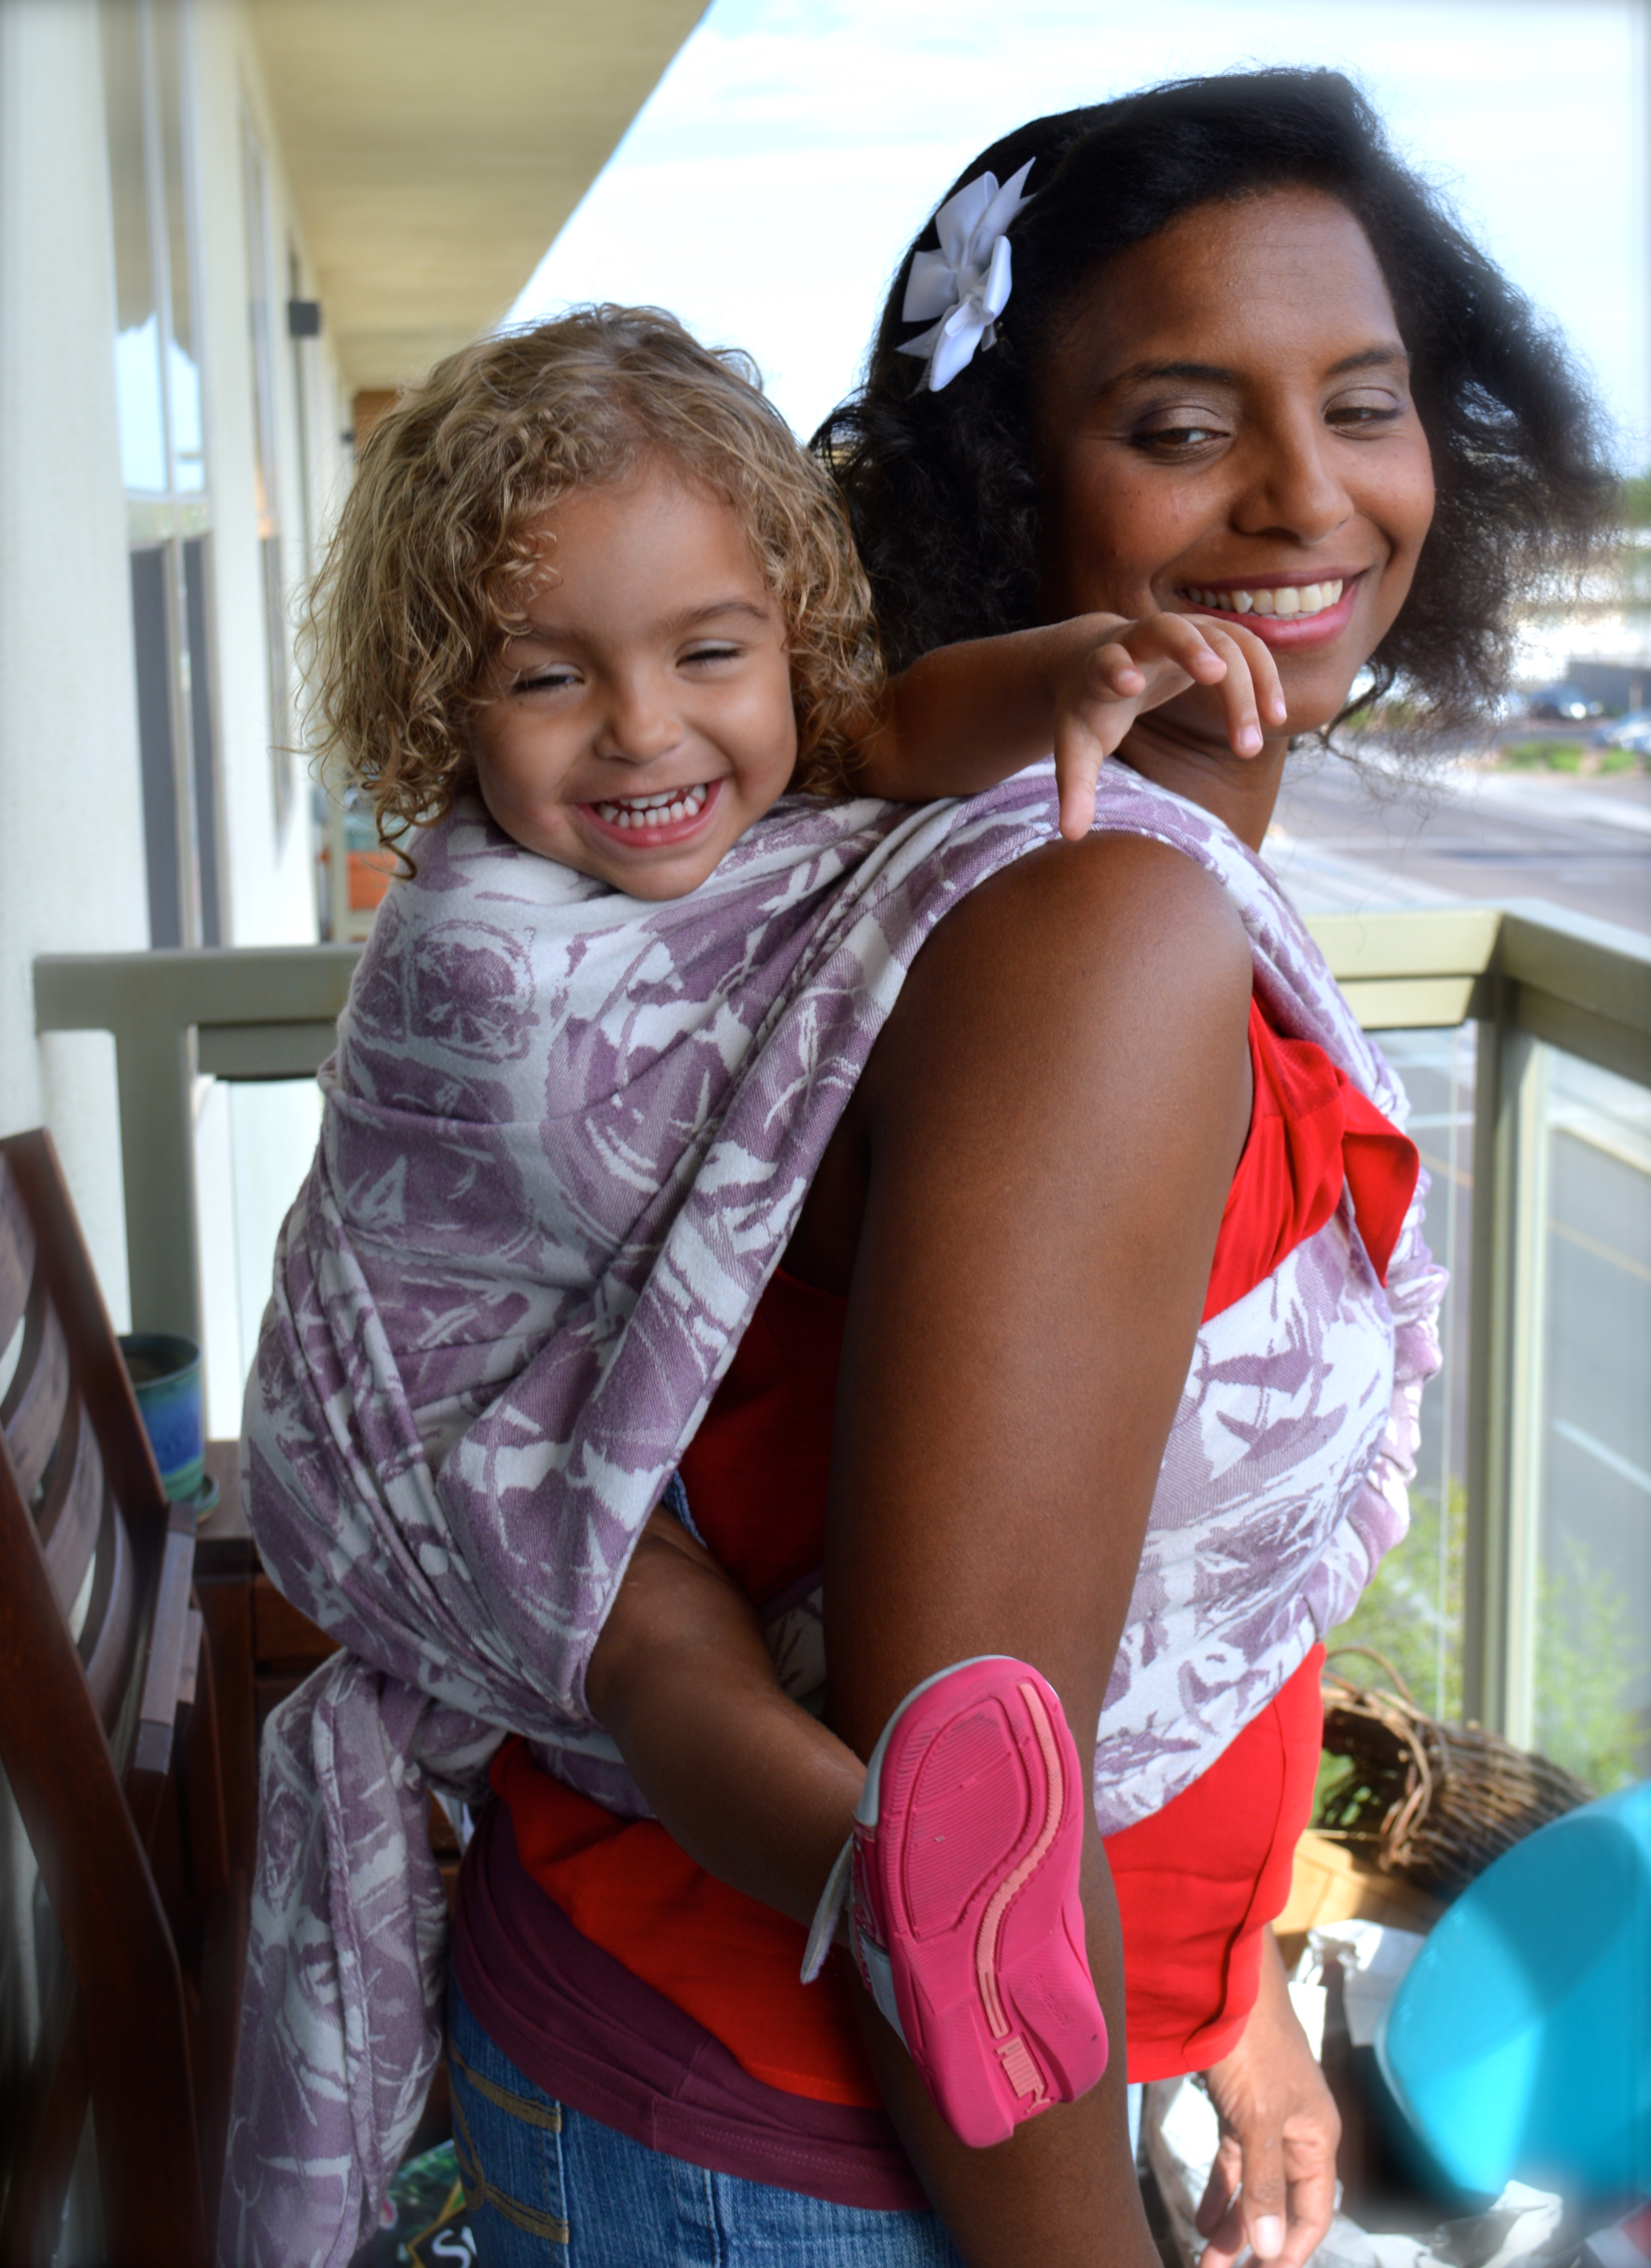 Medium Brown Momma with big natural hair in a red shirt wears her blond haired baby on her back in a white and purple wrap. The carry is a one shouldered carry with the wrap passed back over to show the other side .